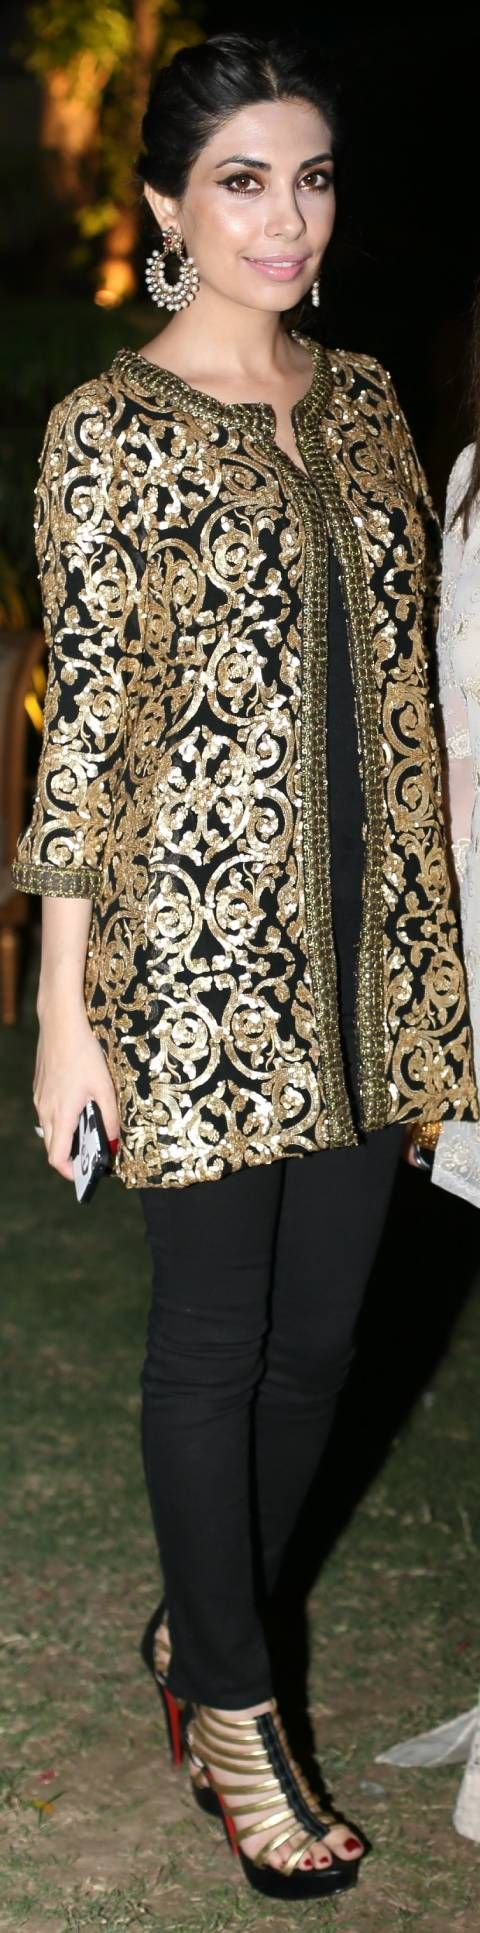 Full length picture of Maheen Taseer in Sana Safinaz Black & Gold Jacket